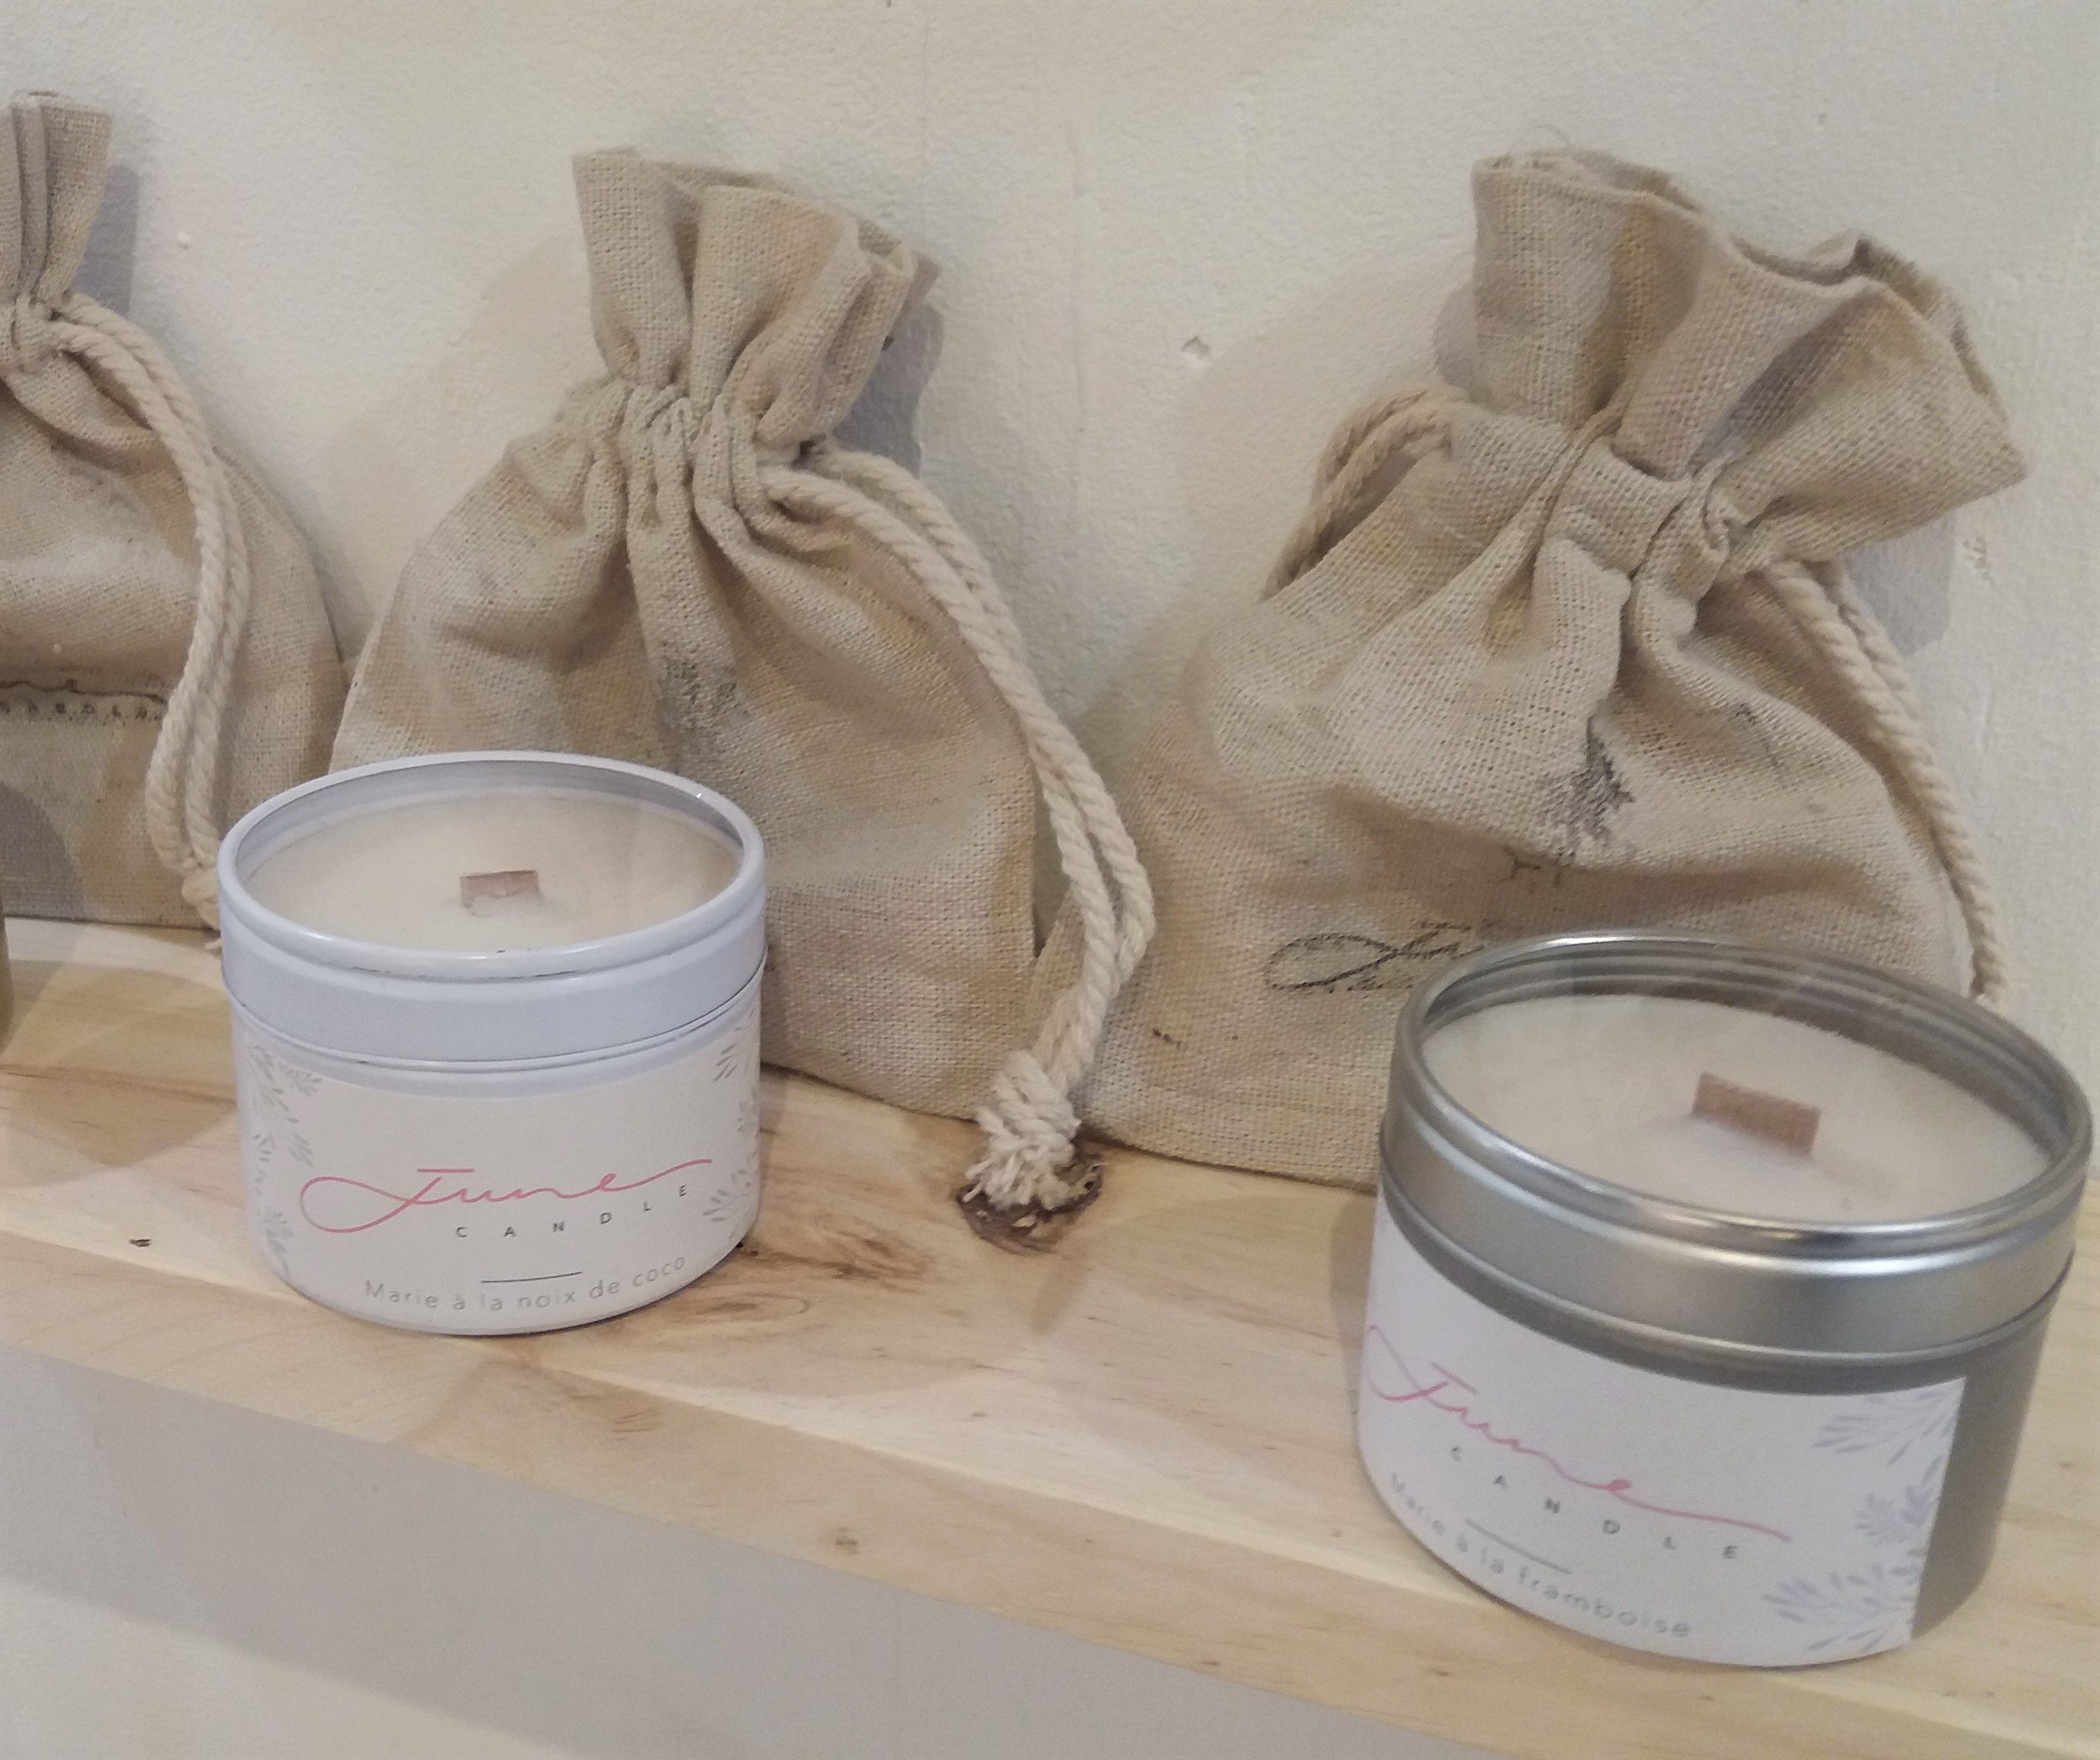 bougie-june candle-editions limitees-bou